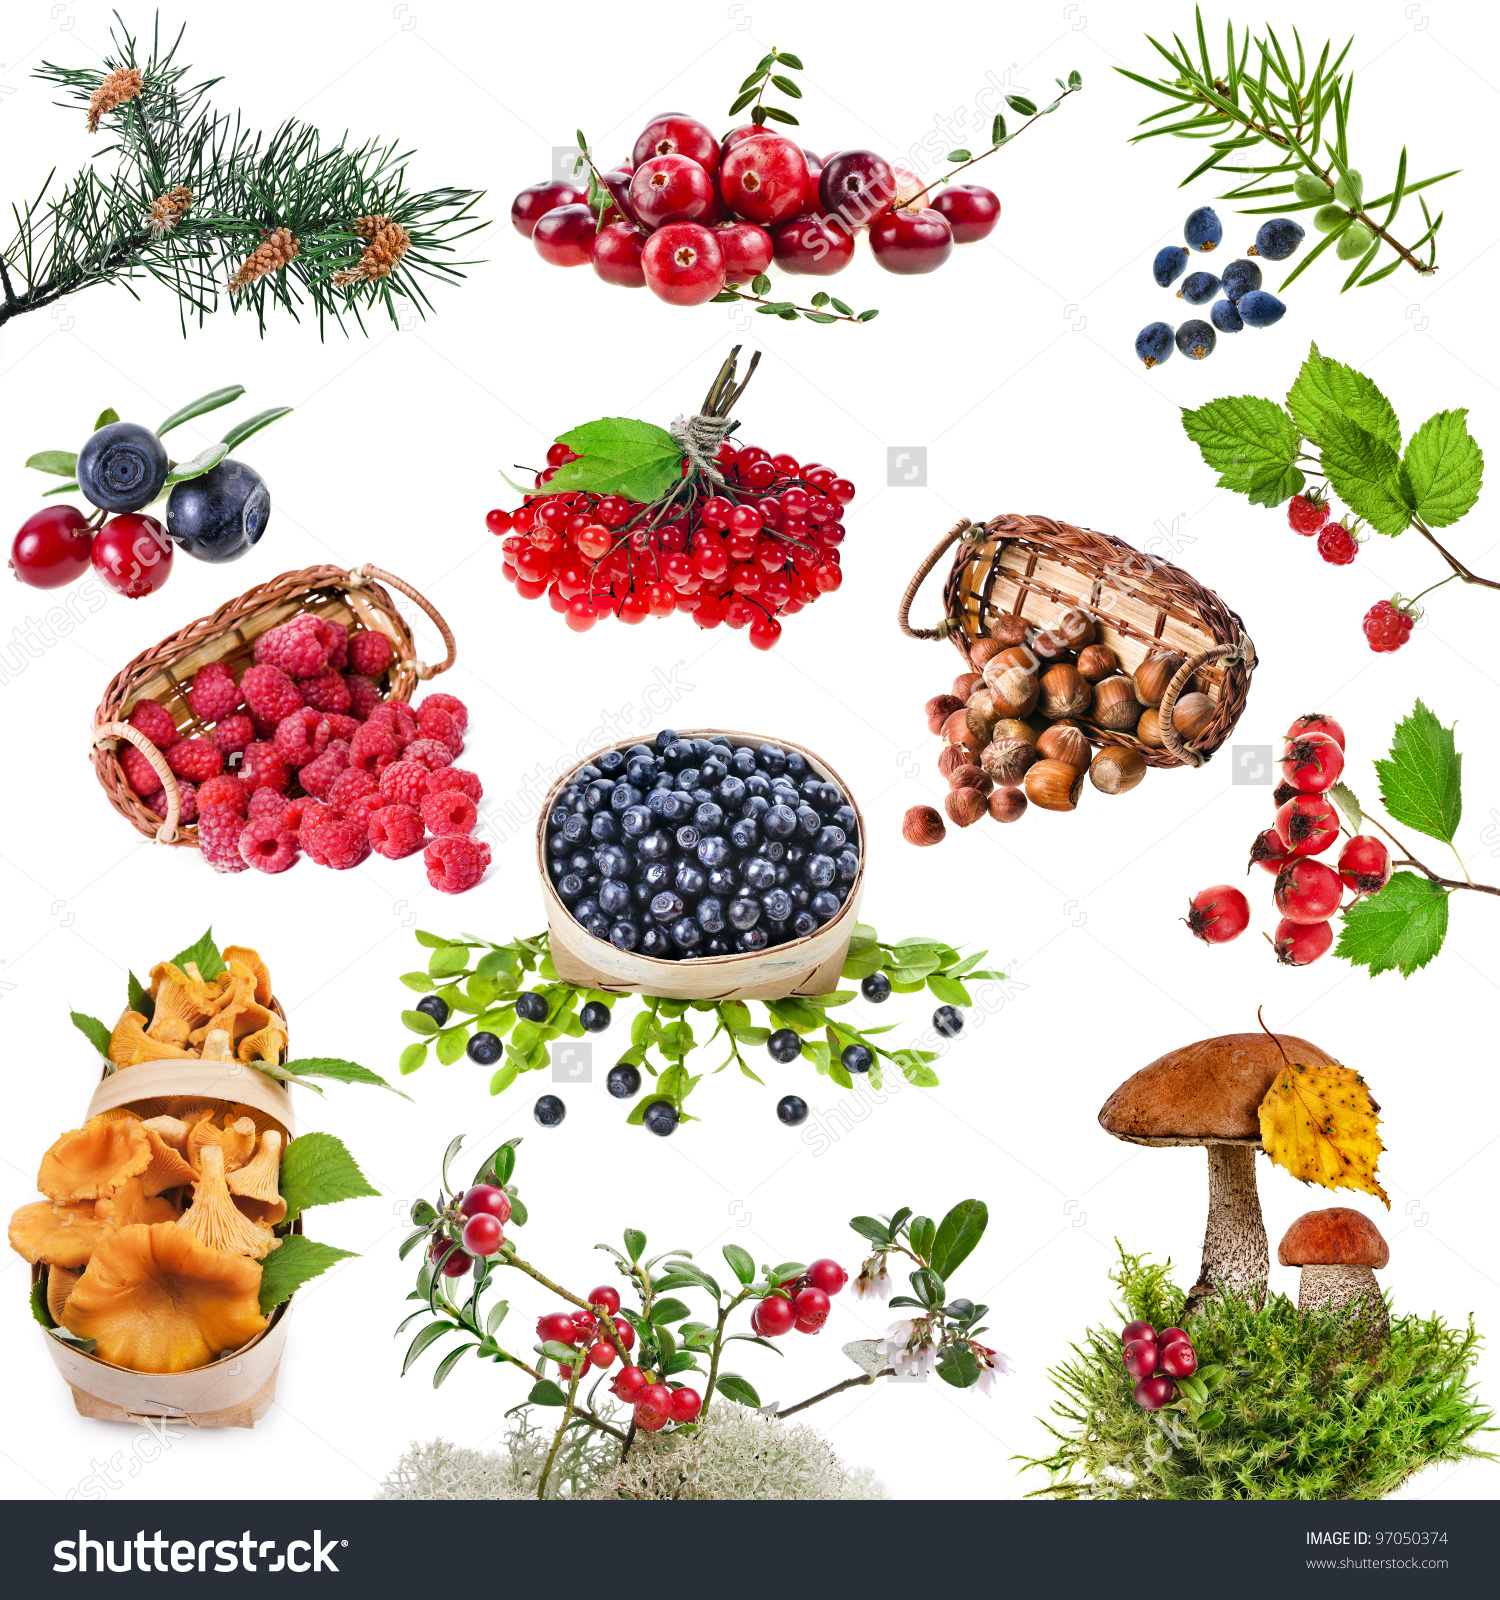 Of the wild fruits clipart #8